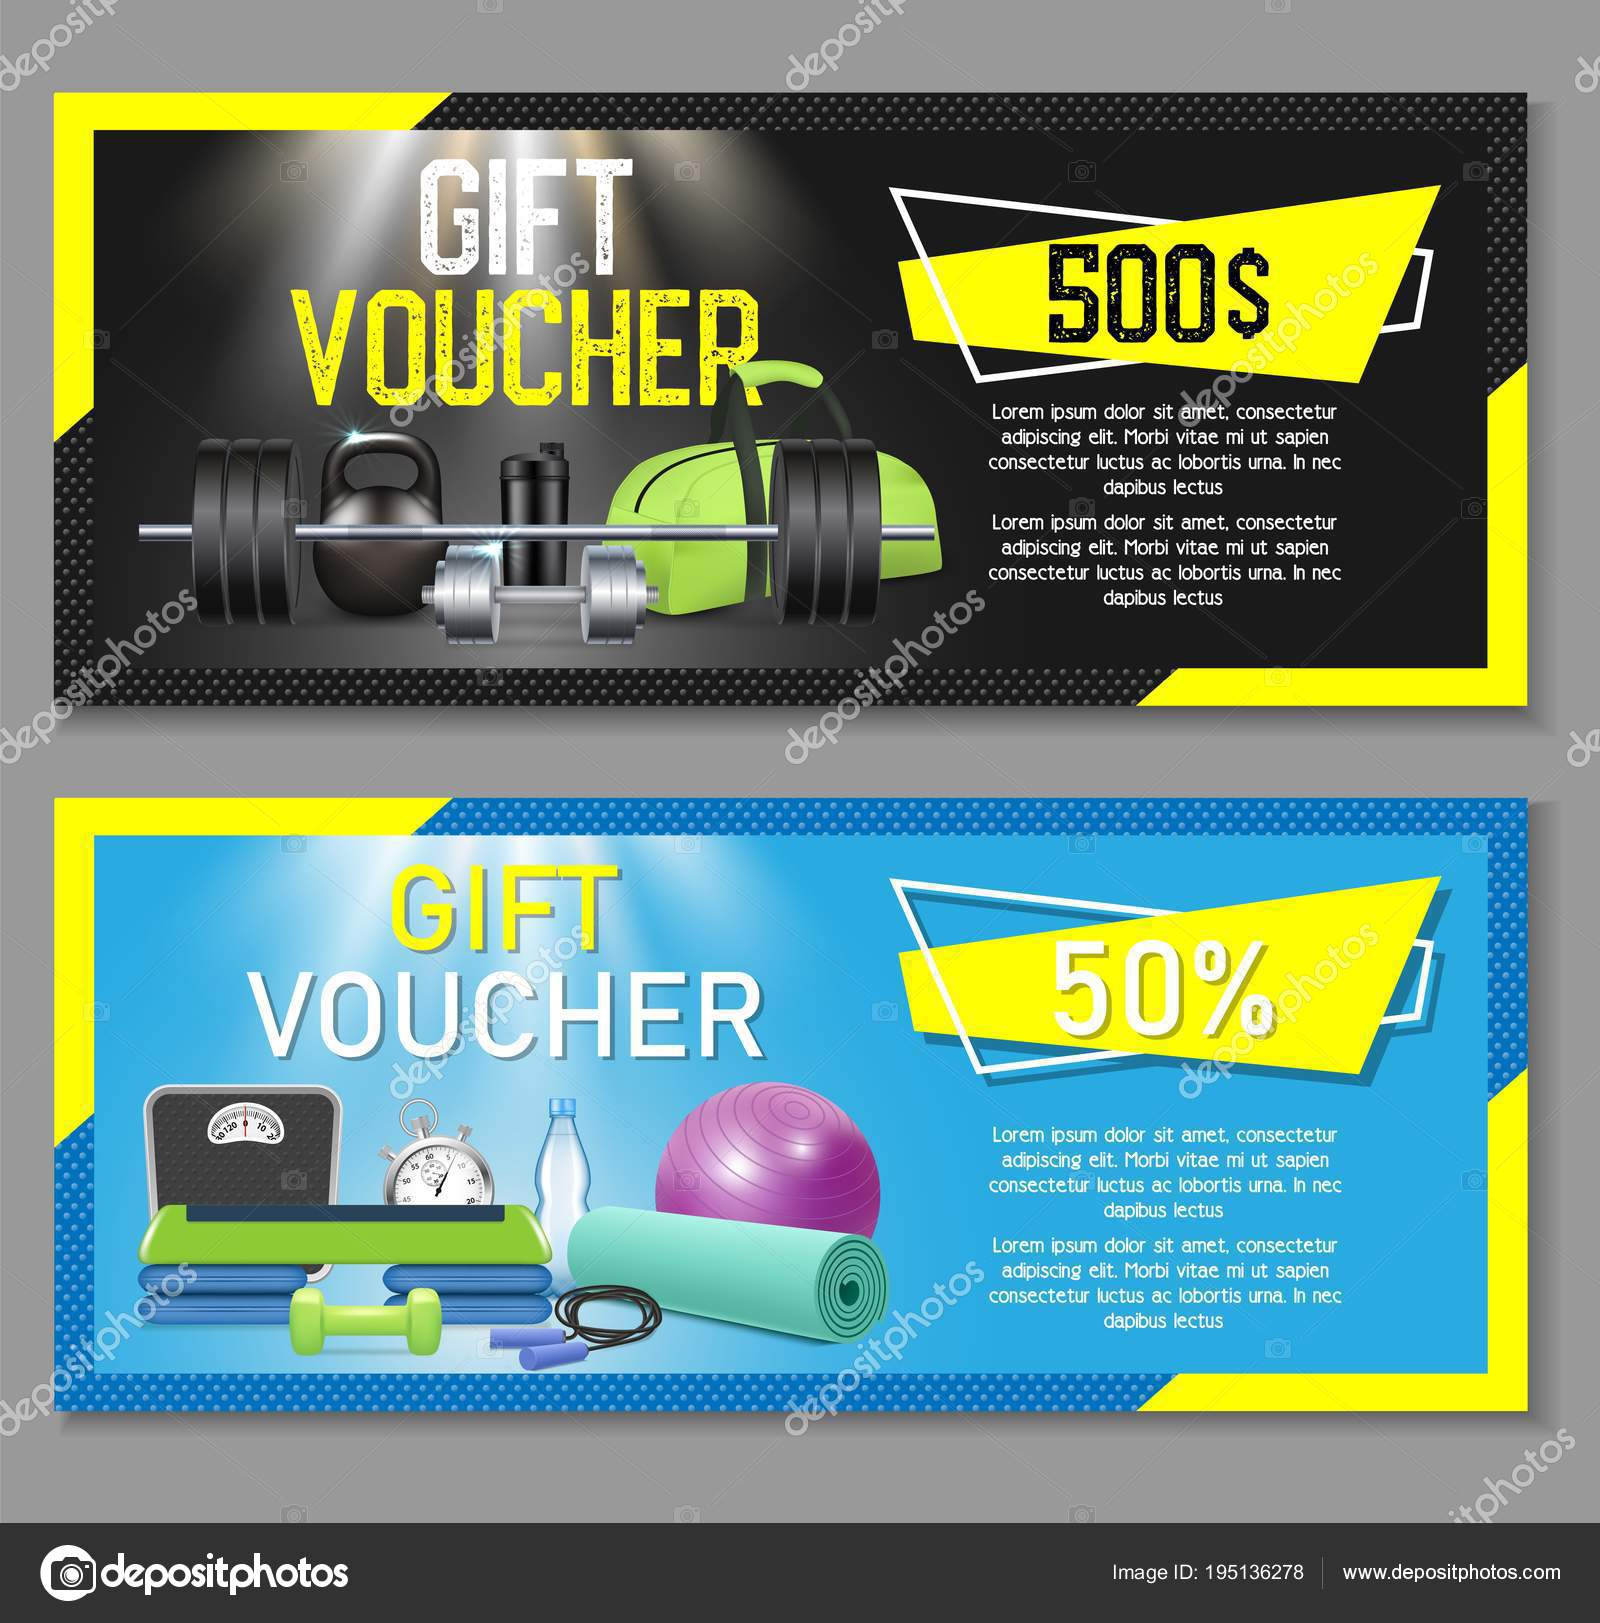 fitness gift voucher template set vector illustration gift certificate discount coupon voucher mockup set for gym fitness center or health club